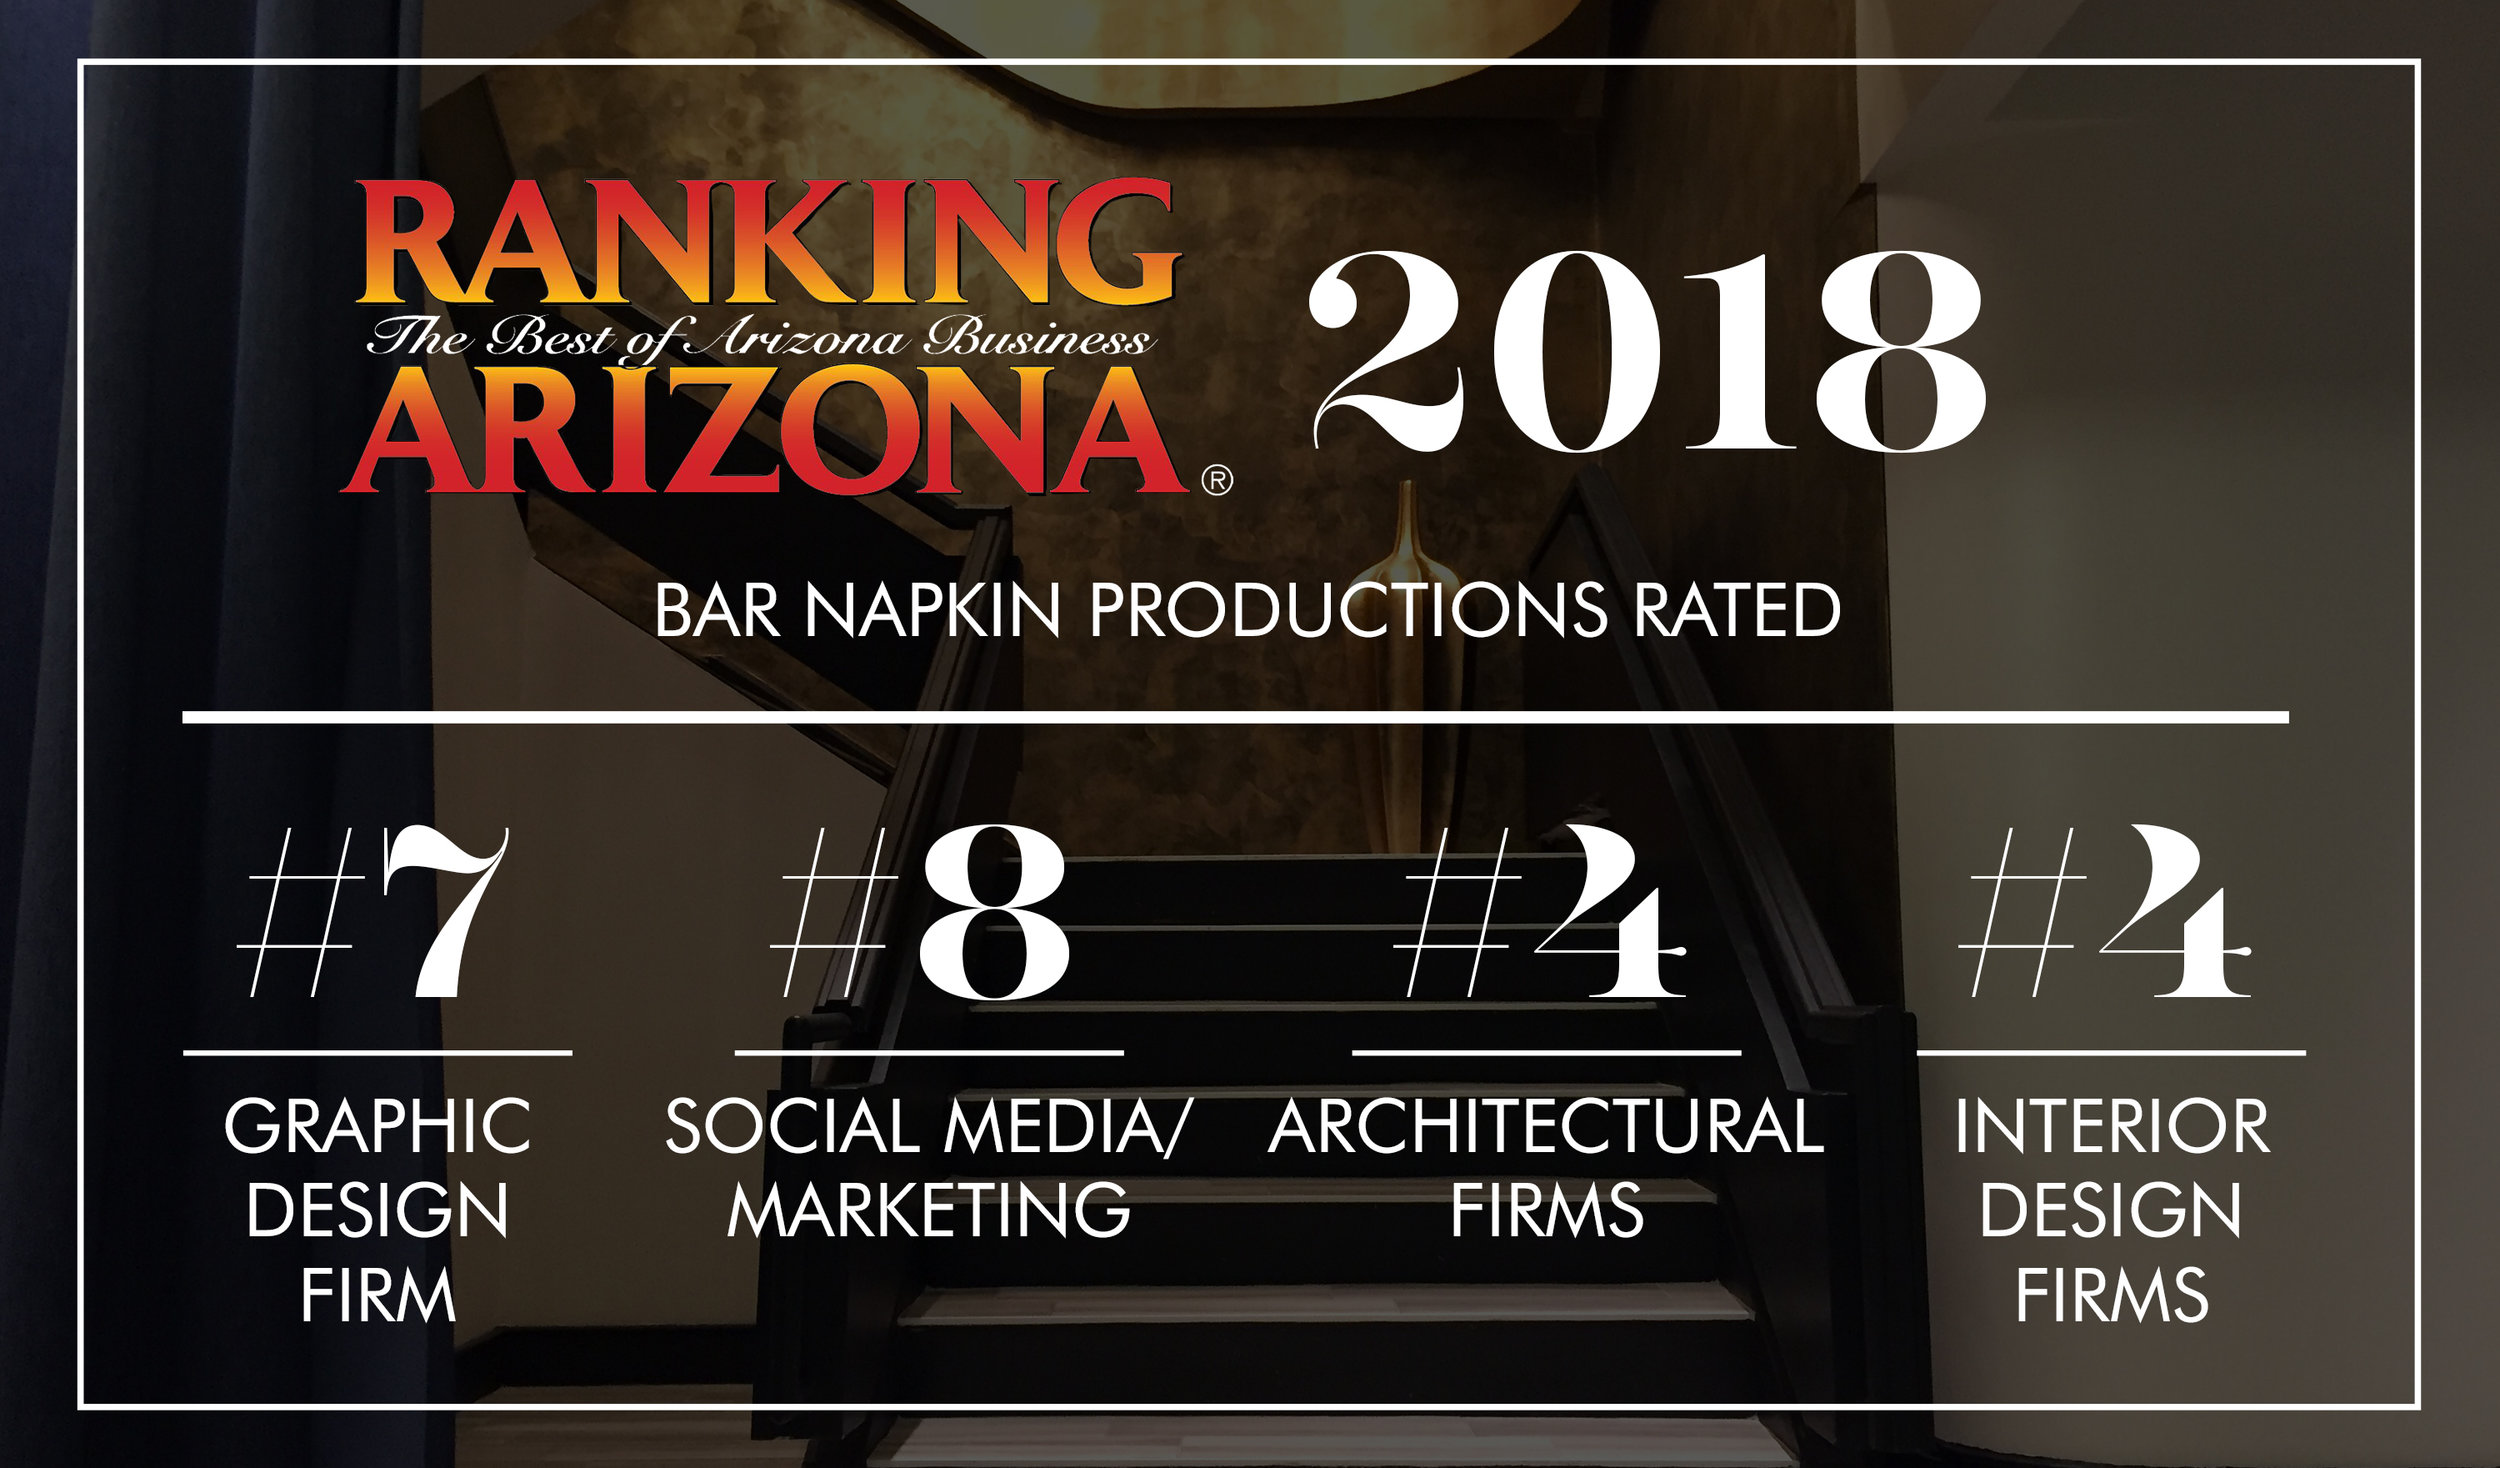 181009-Ranking-Arizona.jpg